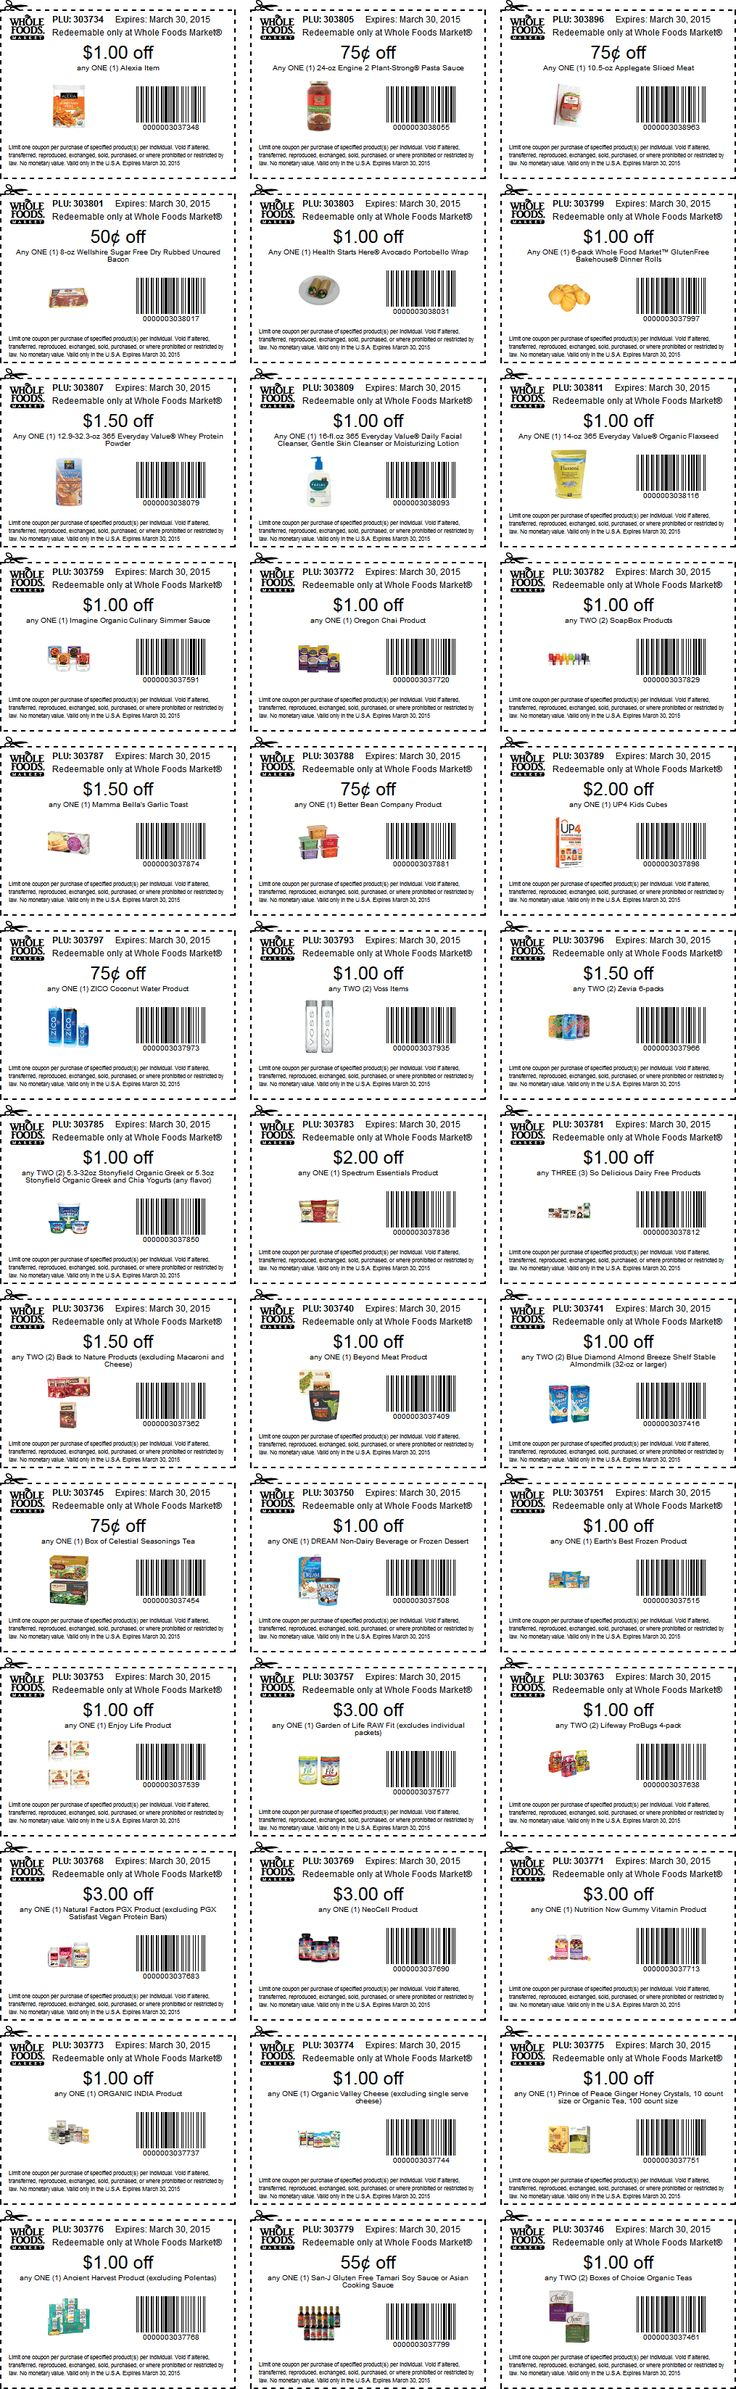 8 best Cupones images on Pinterest | Coupon codes, Printable coupons ...